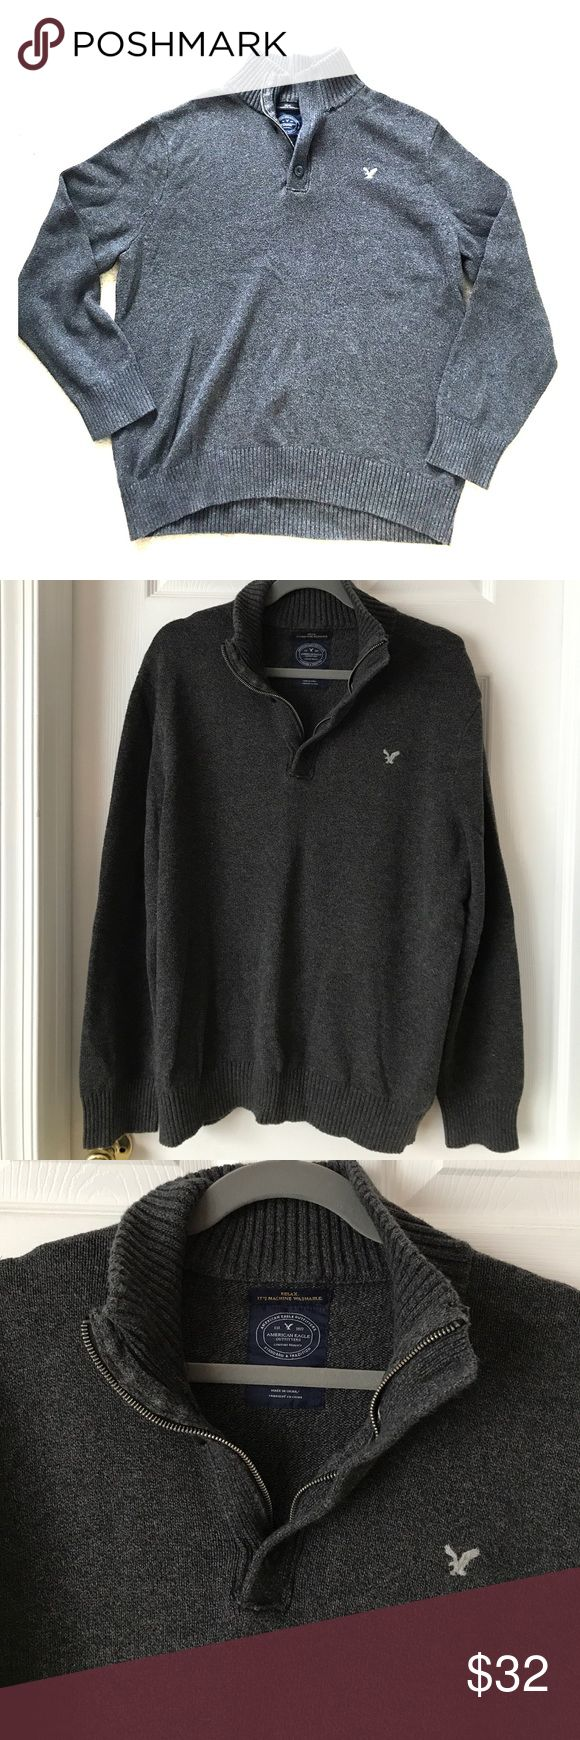 American Eagle Men's Half-Zip Sweater Super warm and super cozy men's half-zip sweater from American Eagle. Only worn a handful of times. Half-zipper also includes buttons as pictured for an even nicer look. Great for any occasion! American Eagle Outfitters Shirts